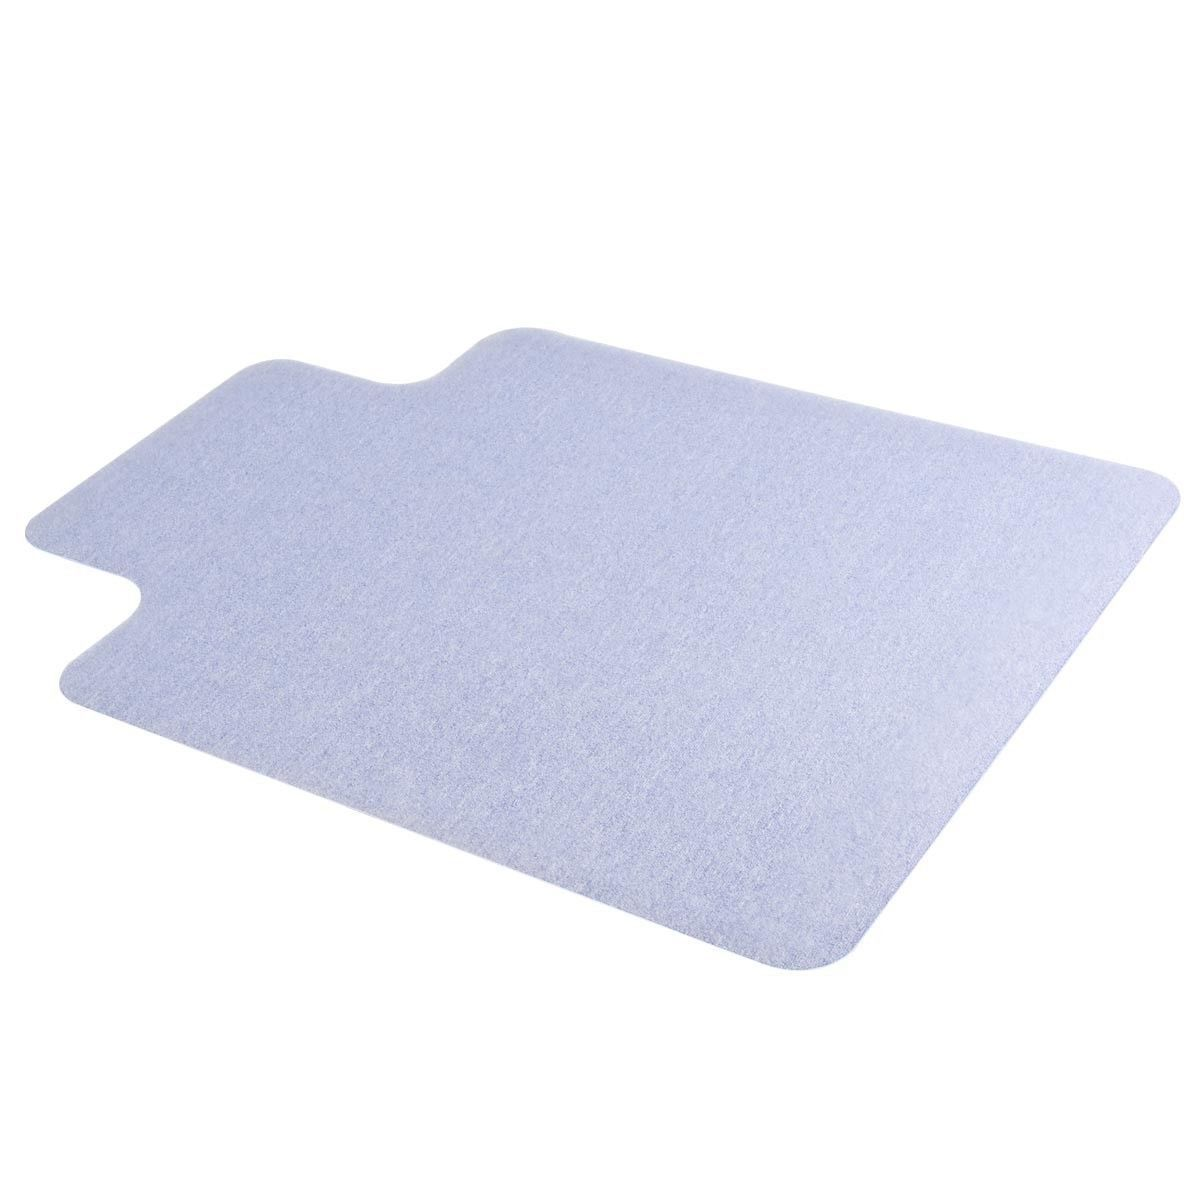 Best chair mat for thick carpet anti static low pile carpet 125 quot thick chair mats 36 low - Deep pile carpet protector ...